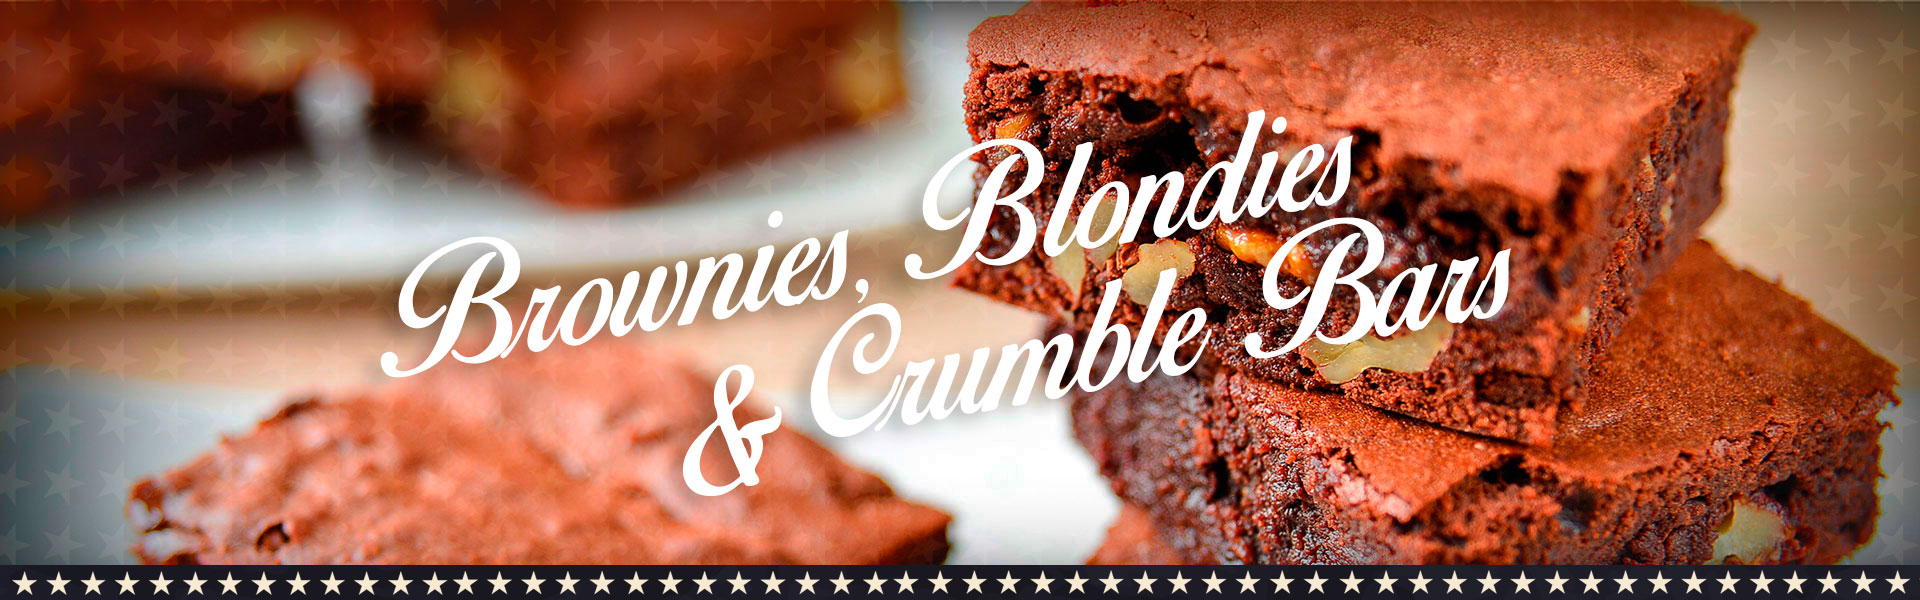 Header_brownies